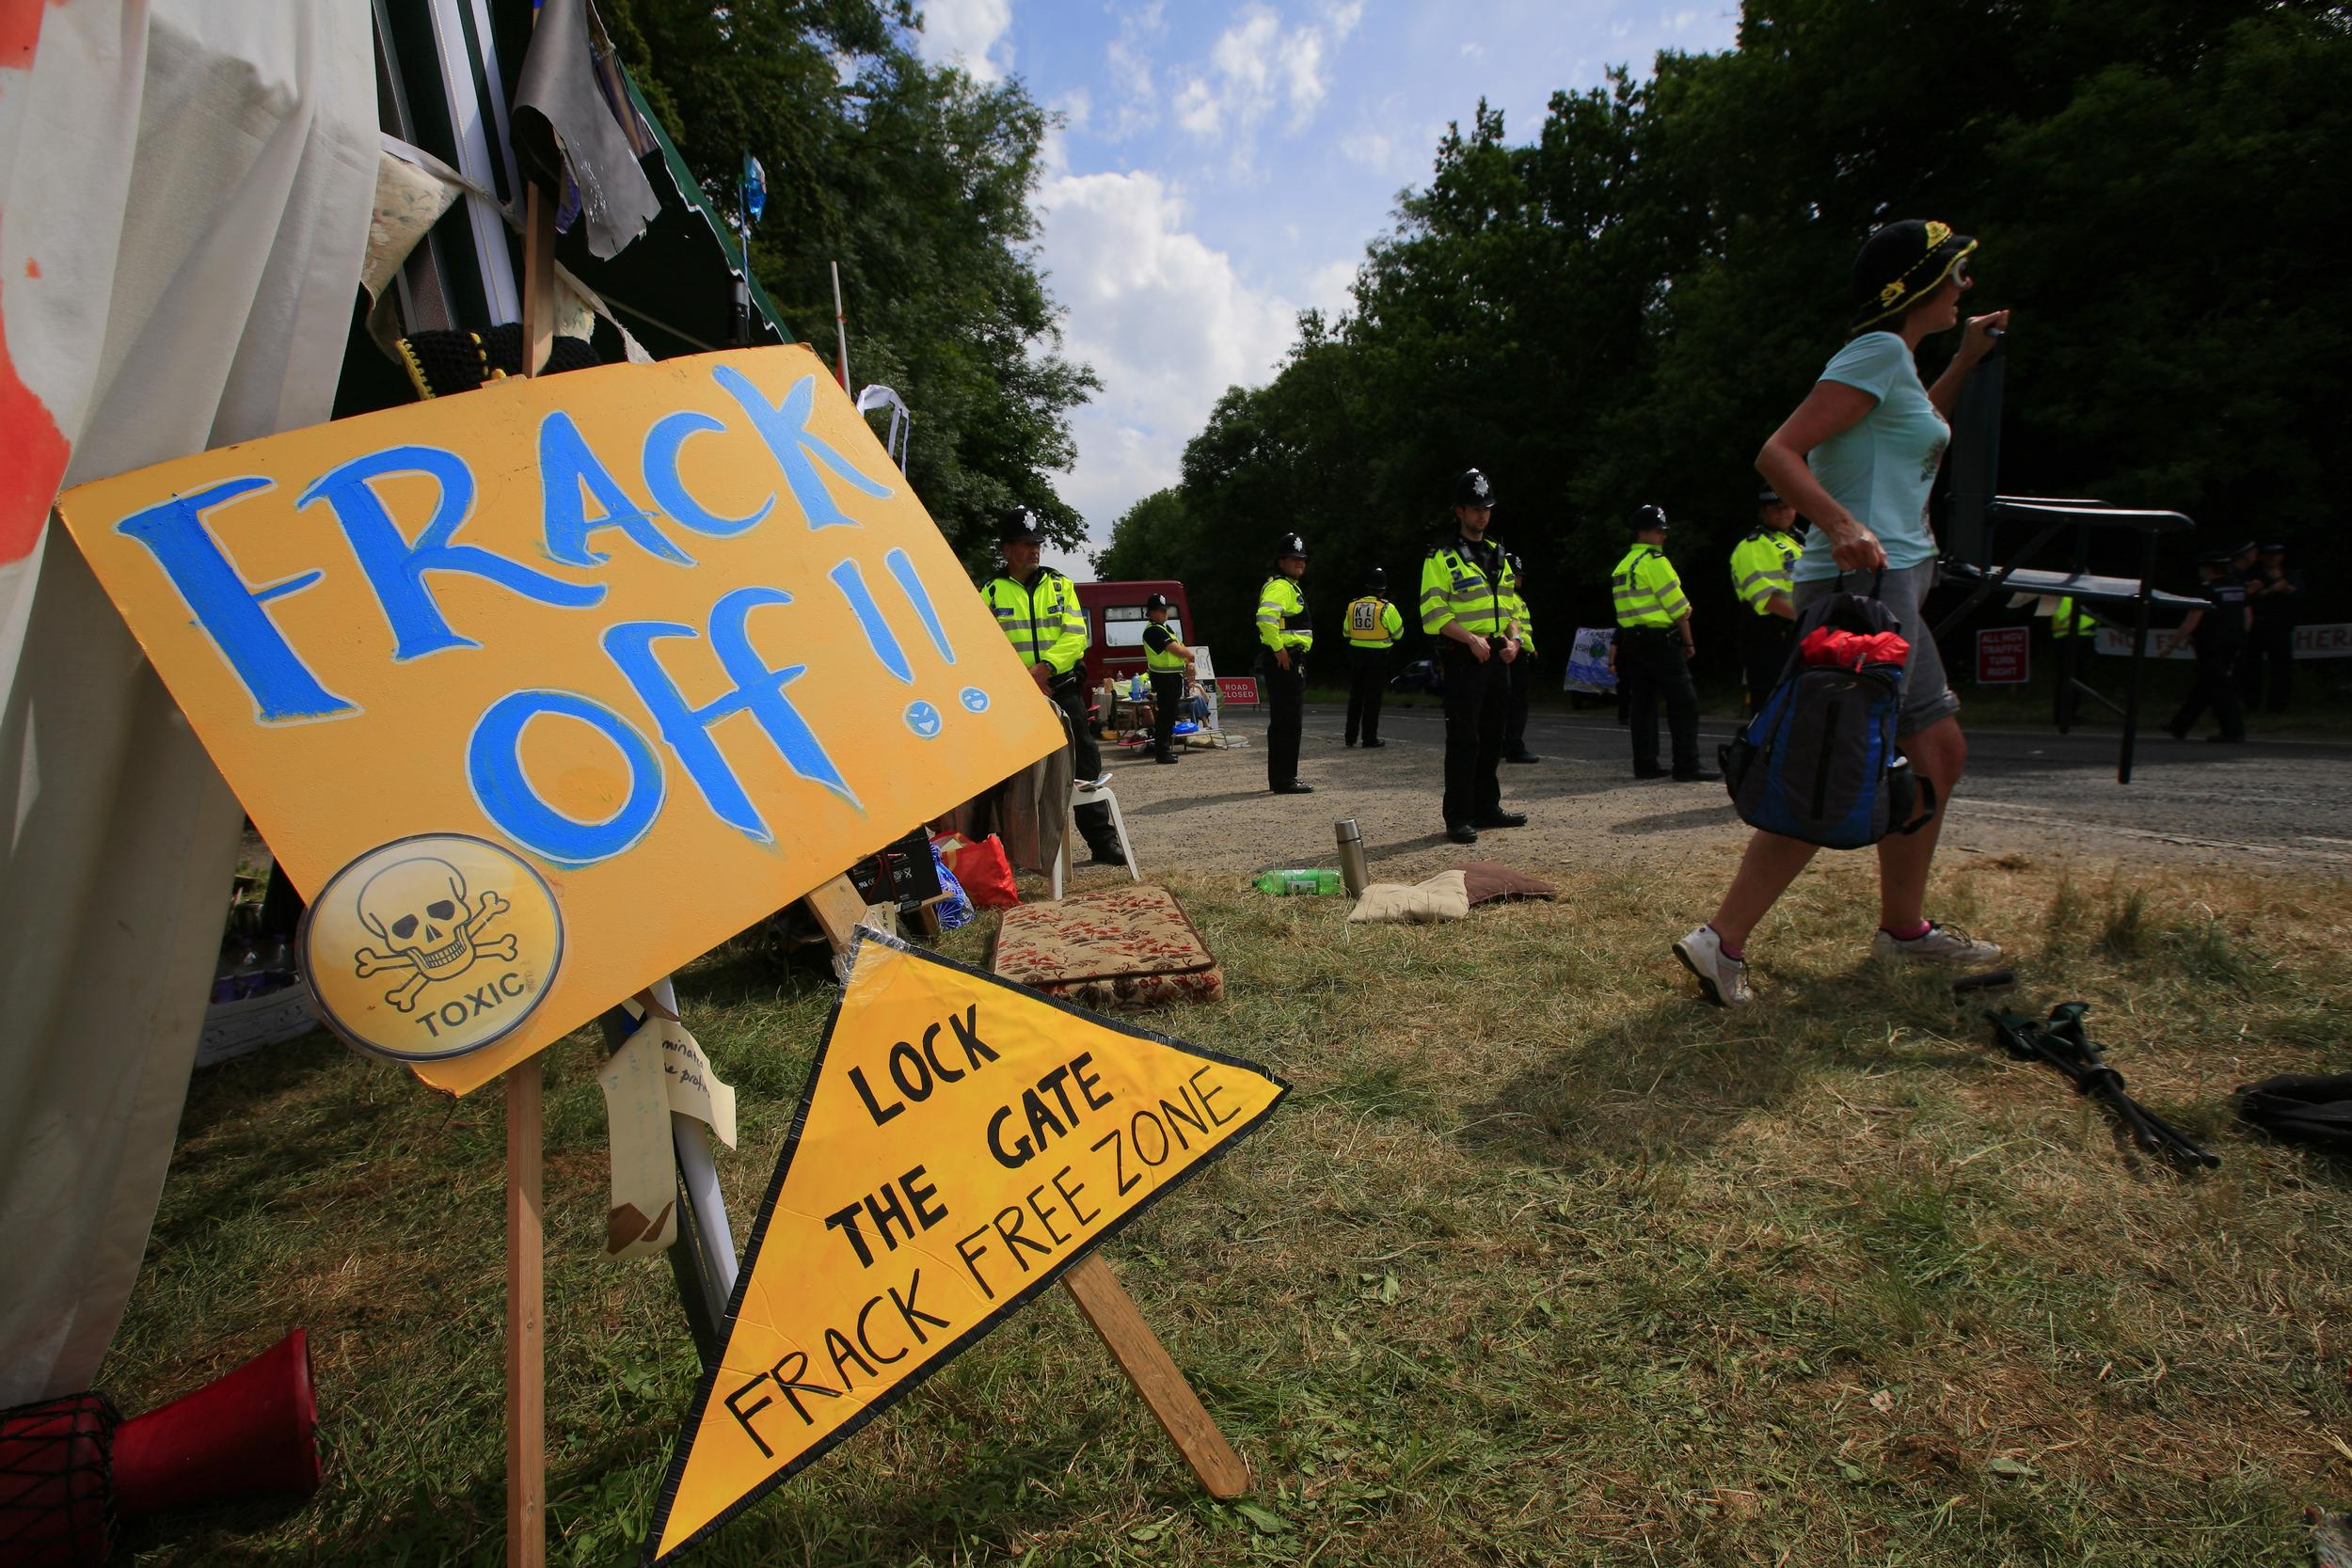 frack off signs and police in a field